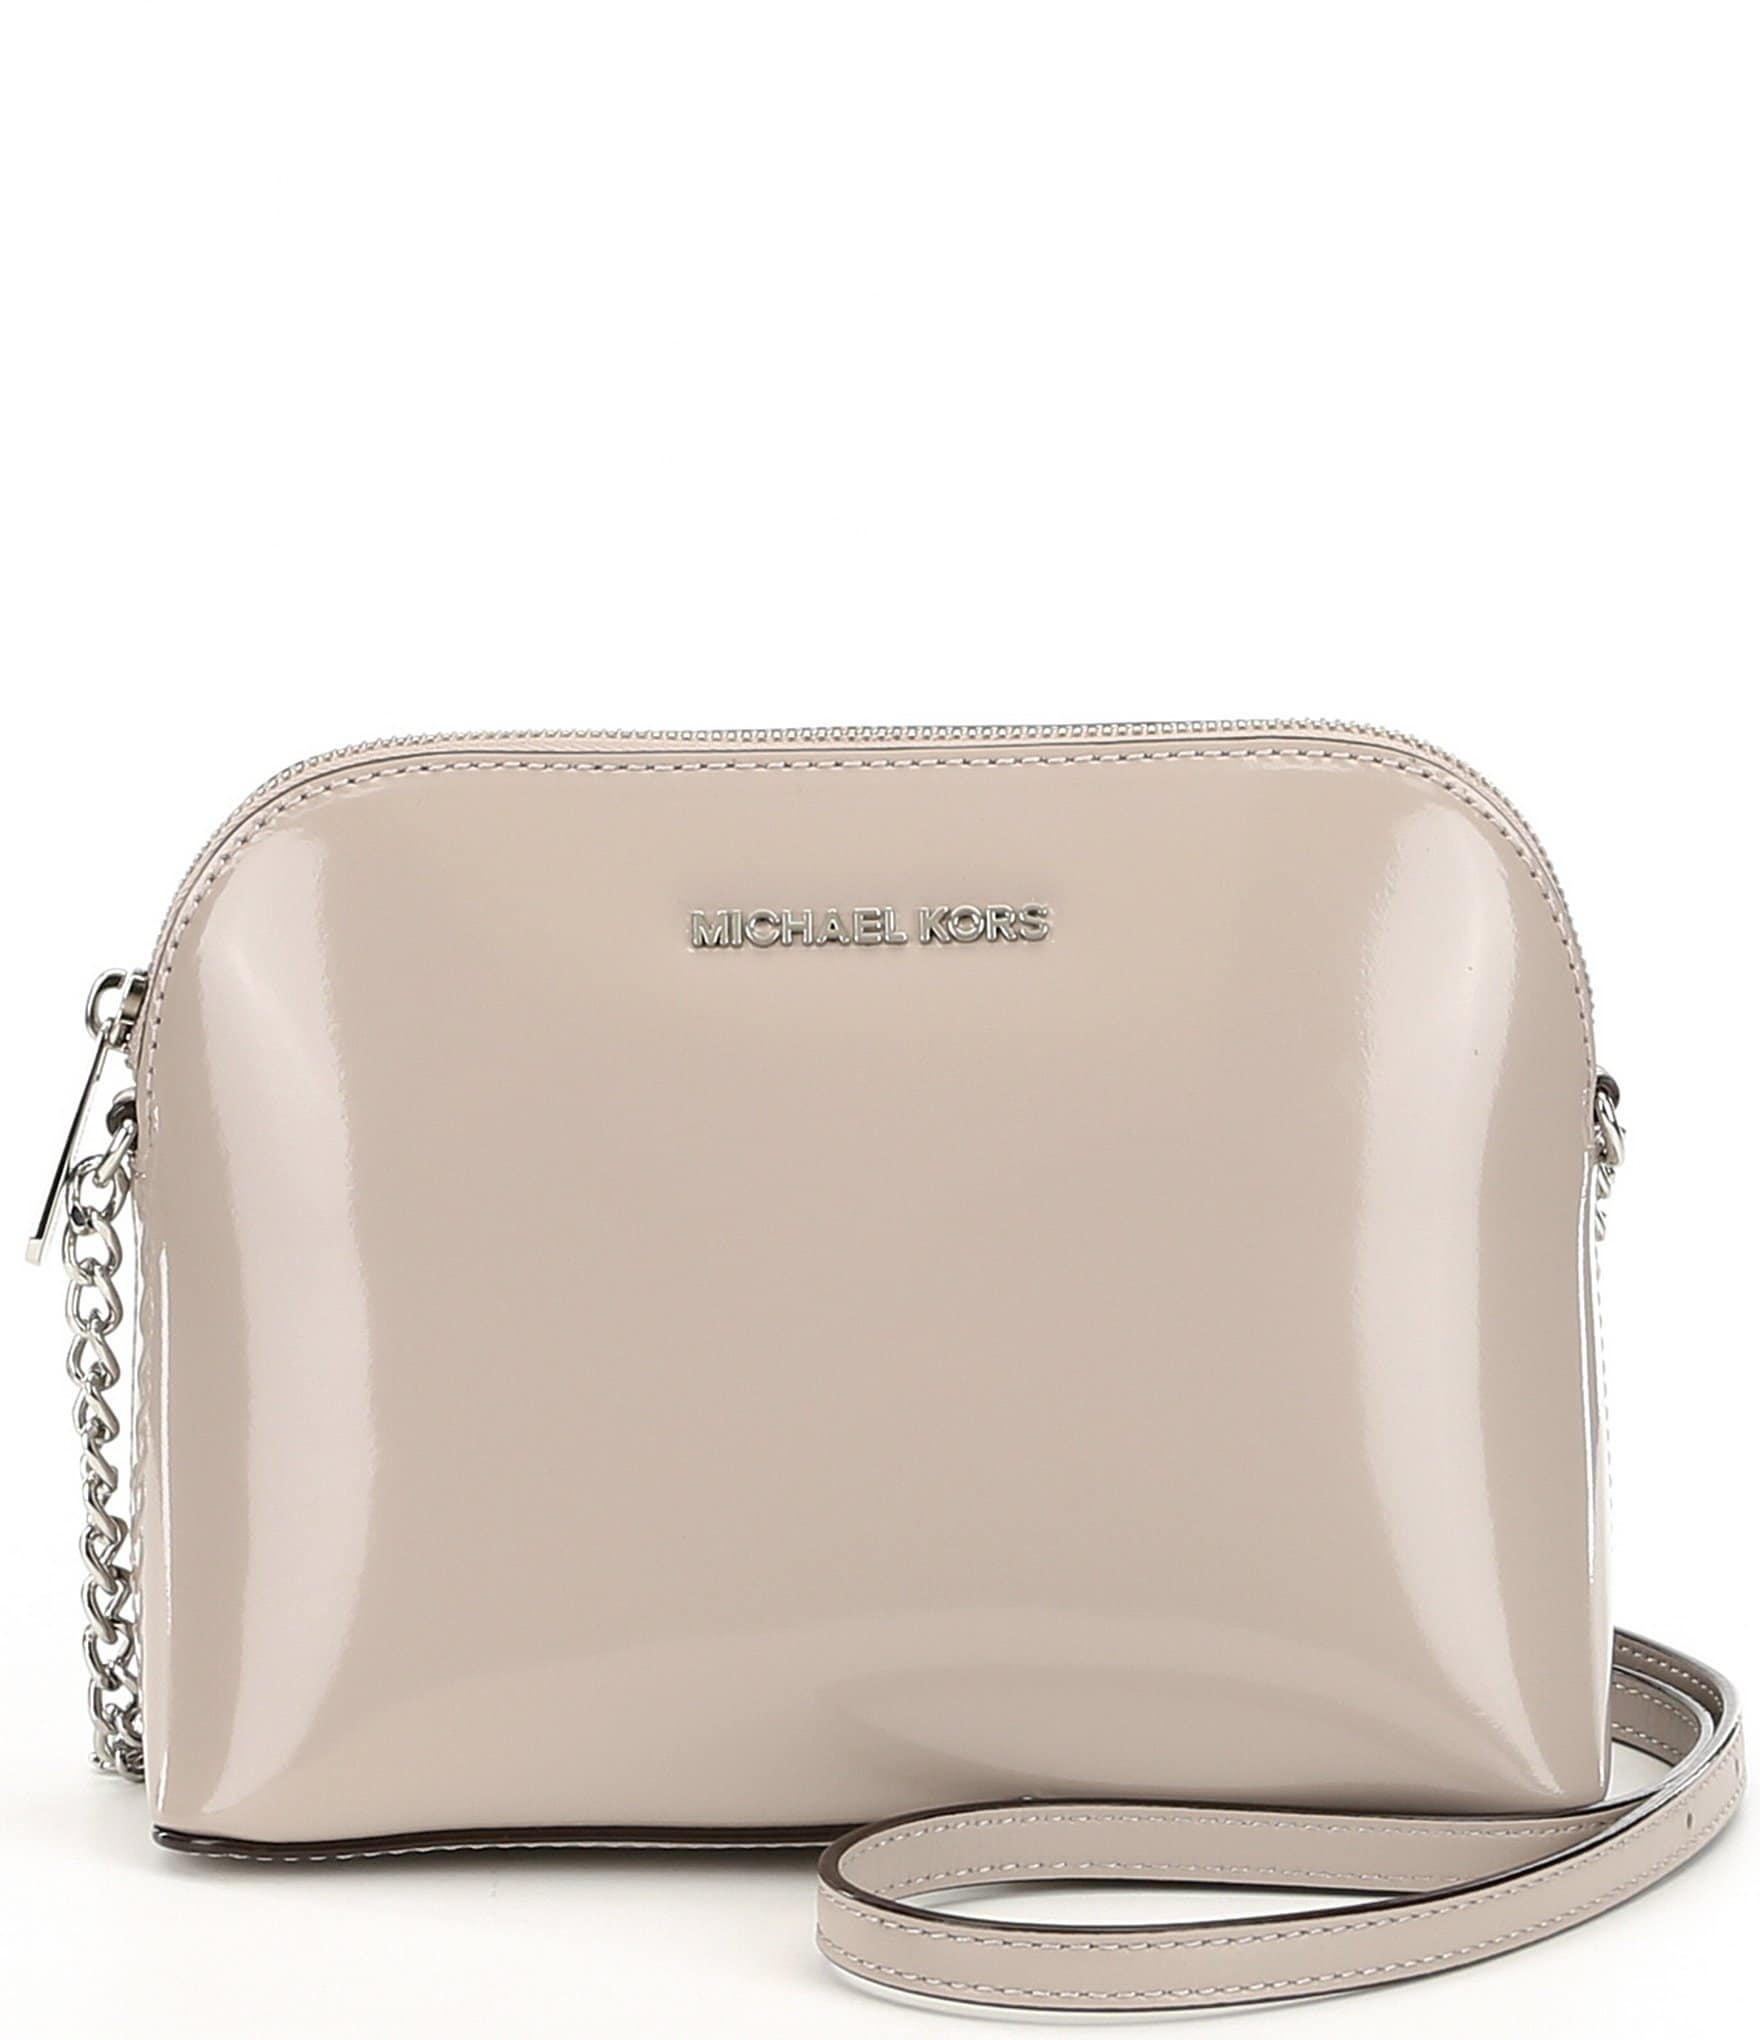 ccd771ac9363 Buy michael kors crossbody silver > OFF65% Discounted